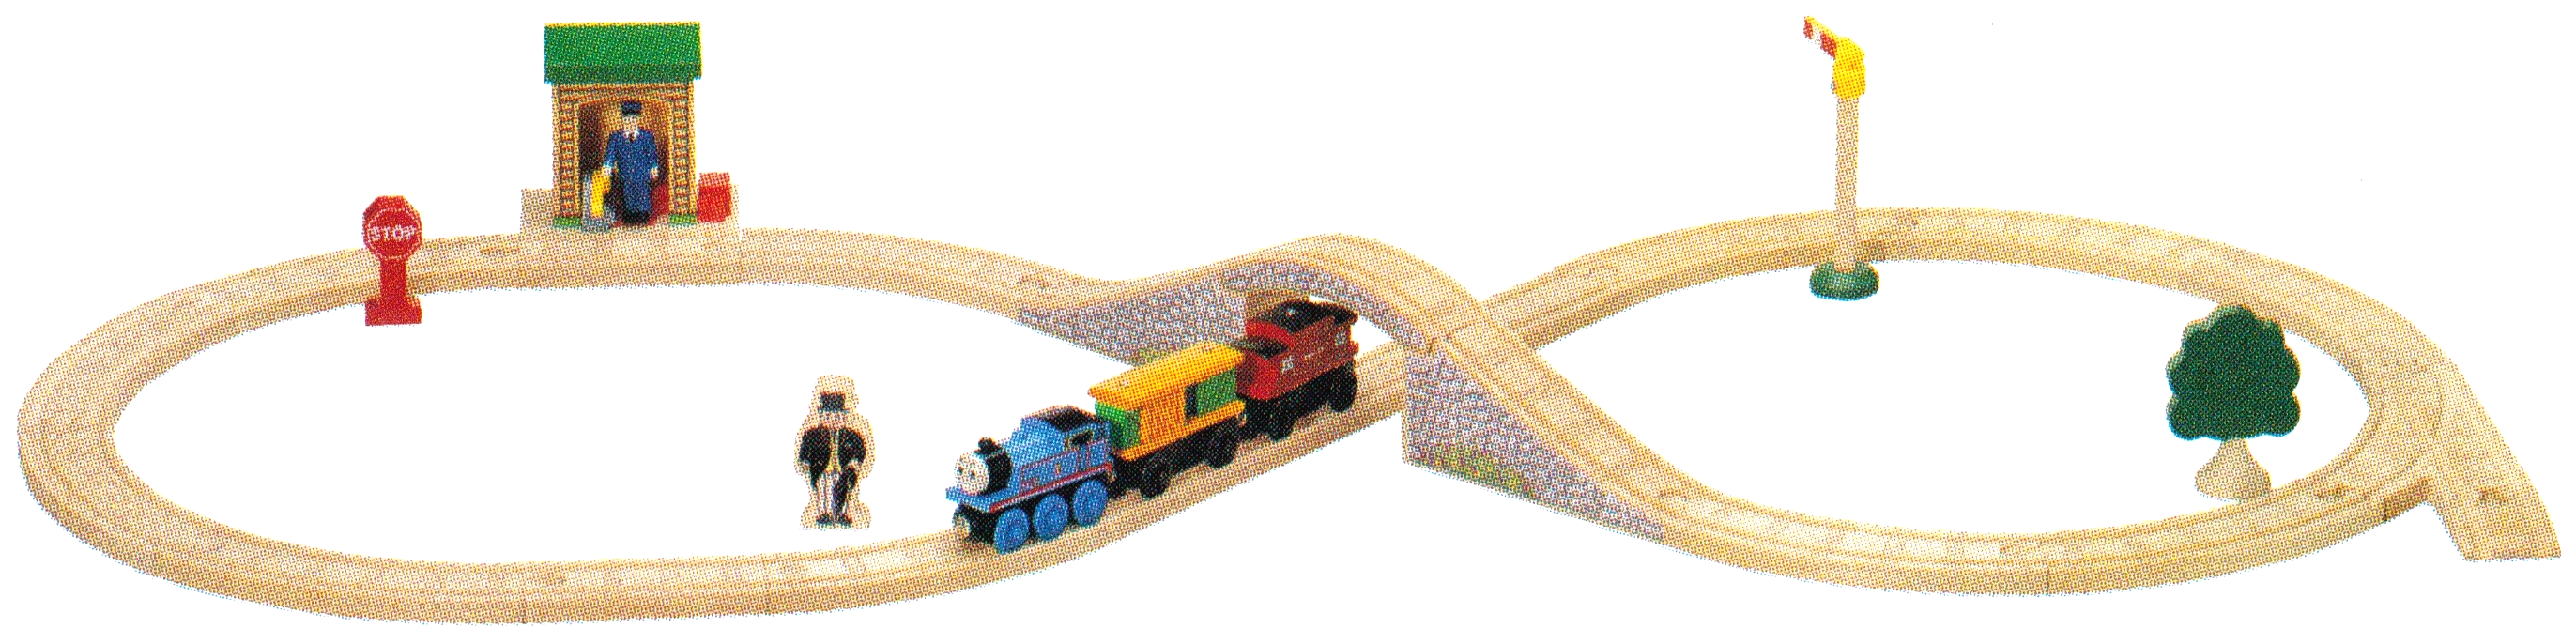 File:WoodenRailwayConductor'sFigure8.png